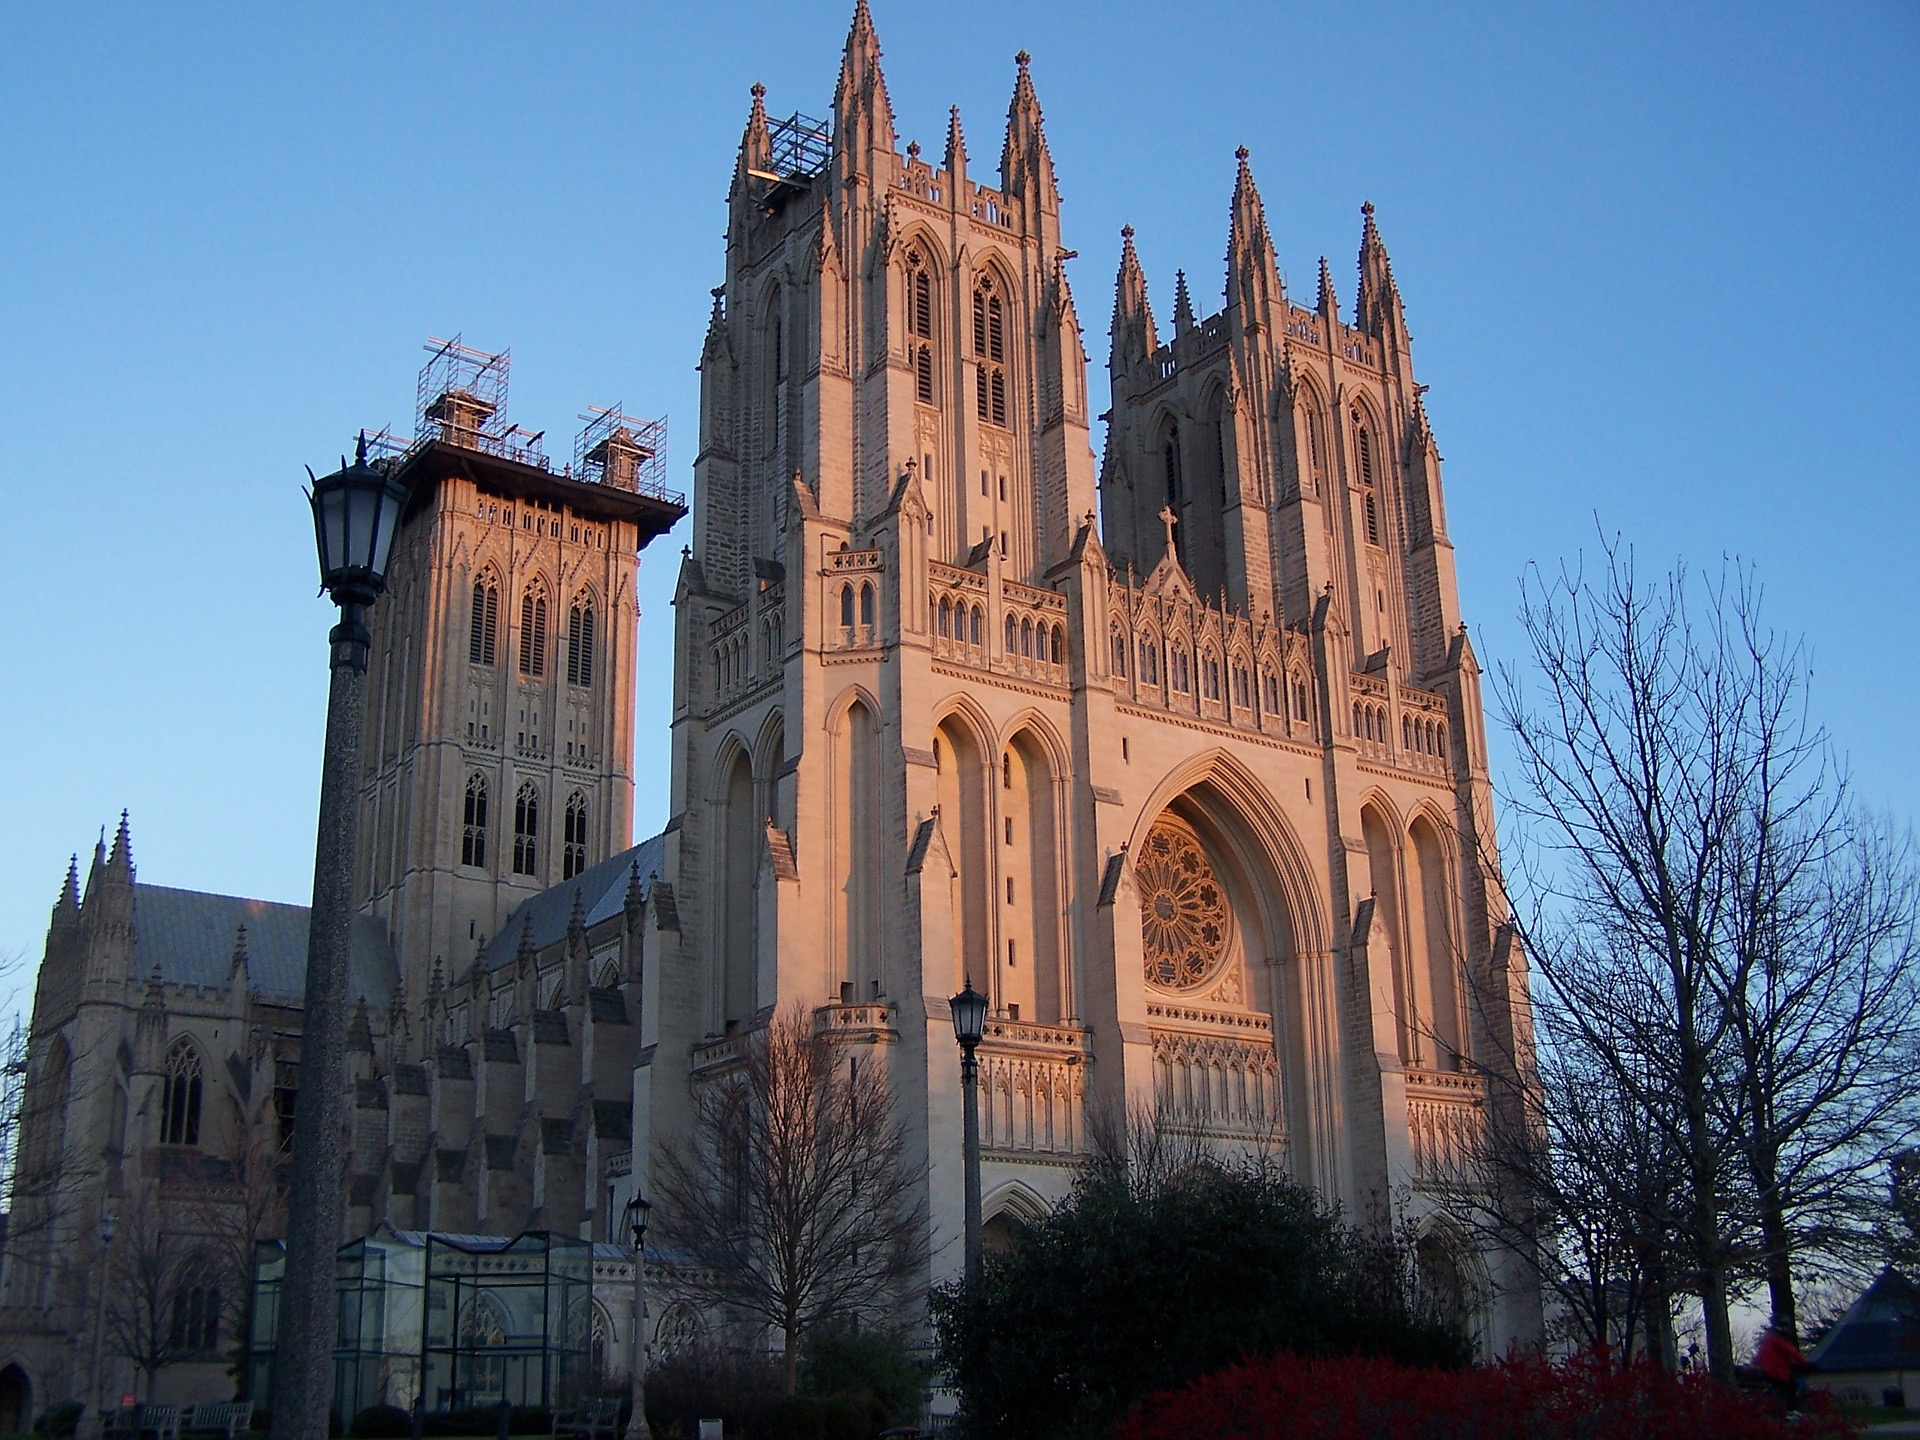 washington-dc-national-cathedral-remarkable-architecture.jpg